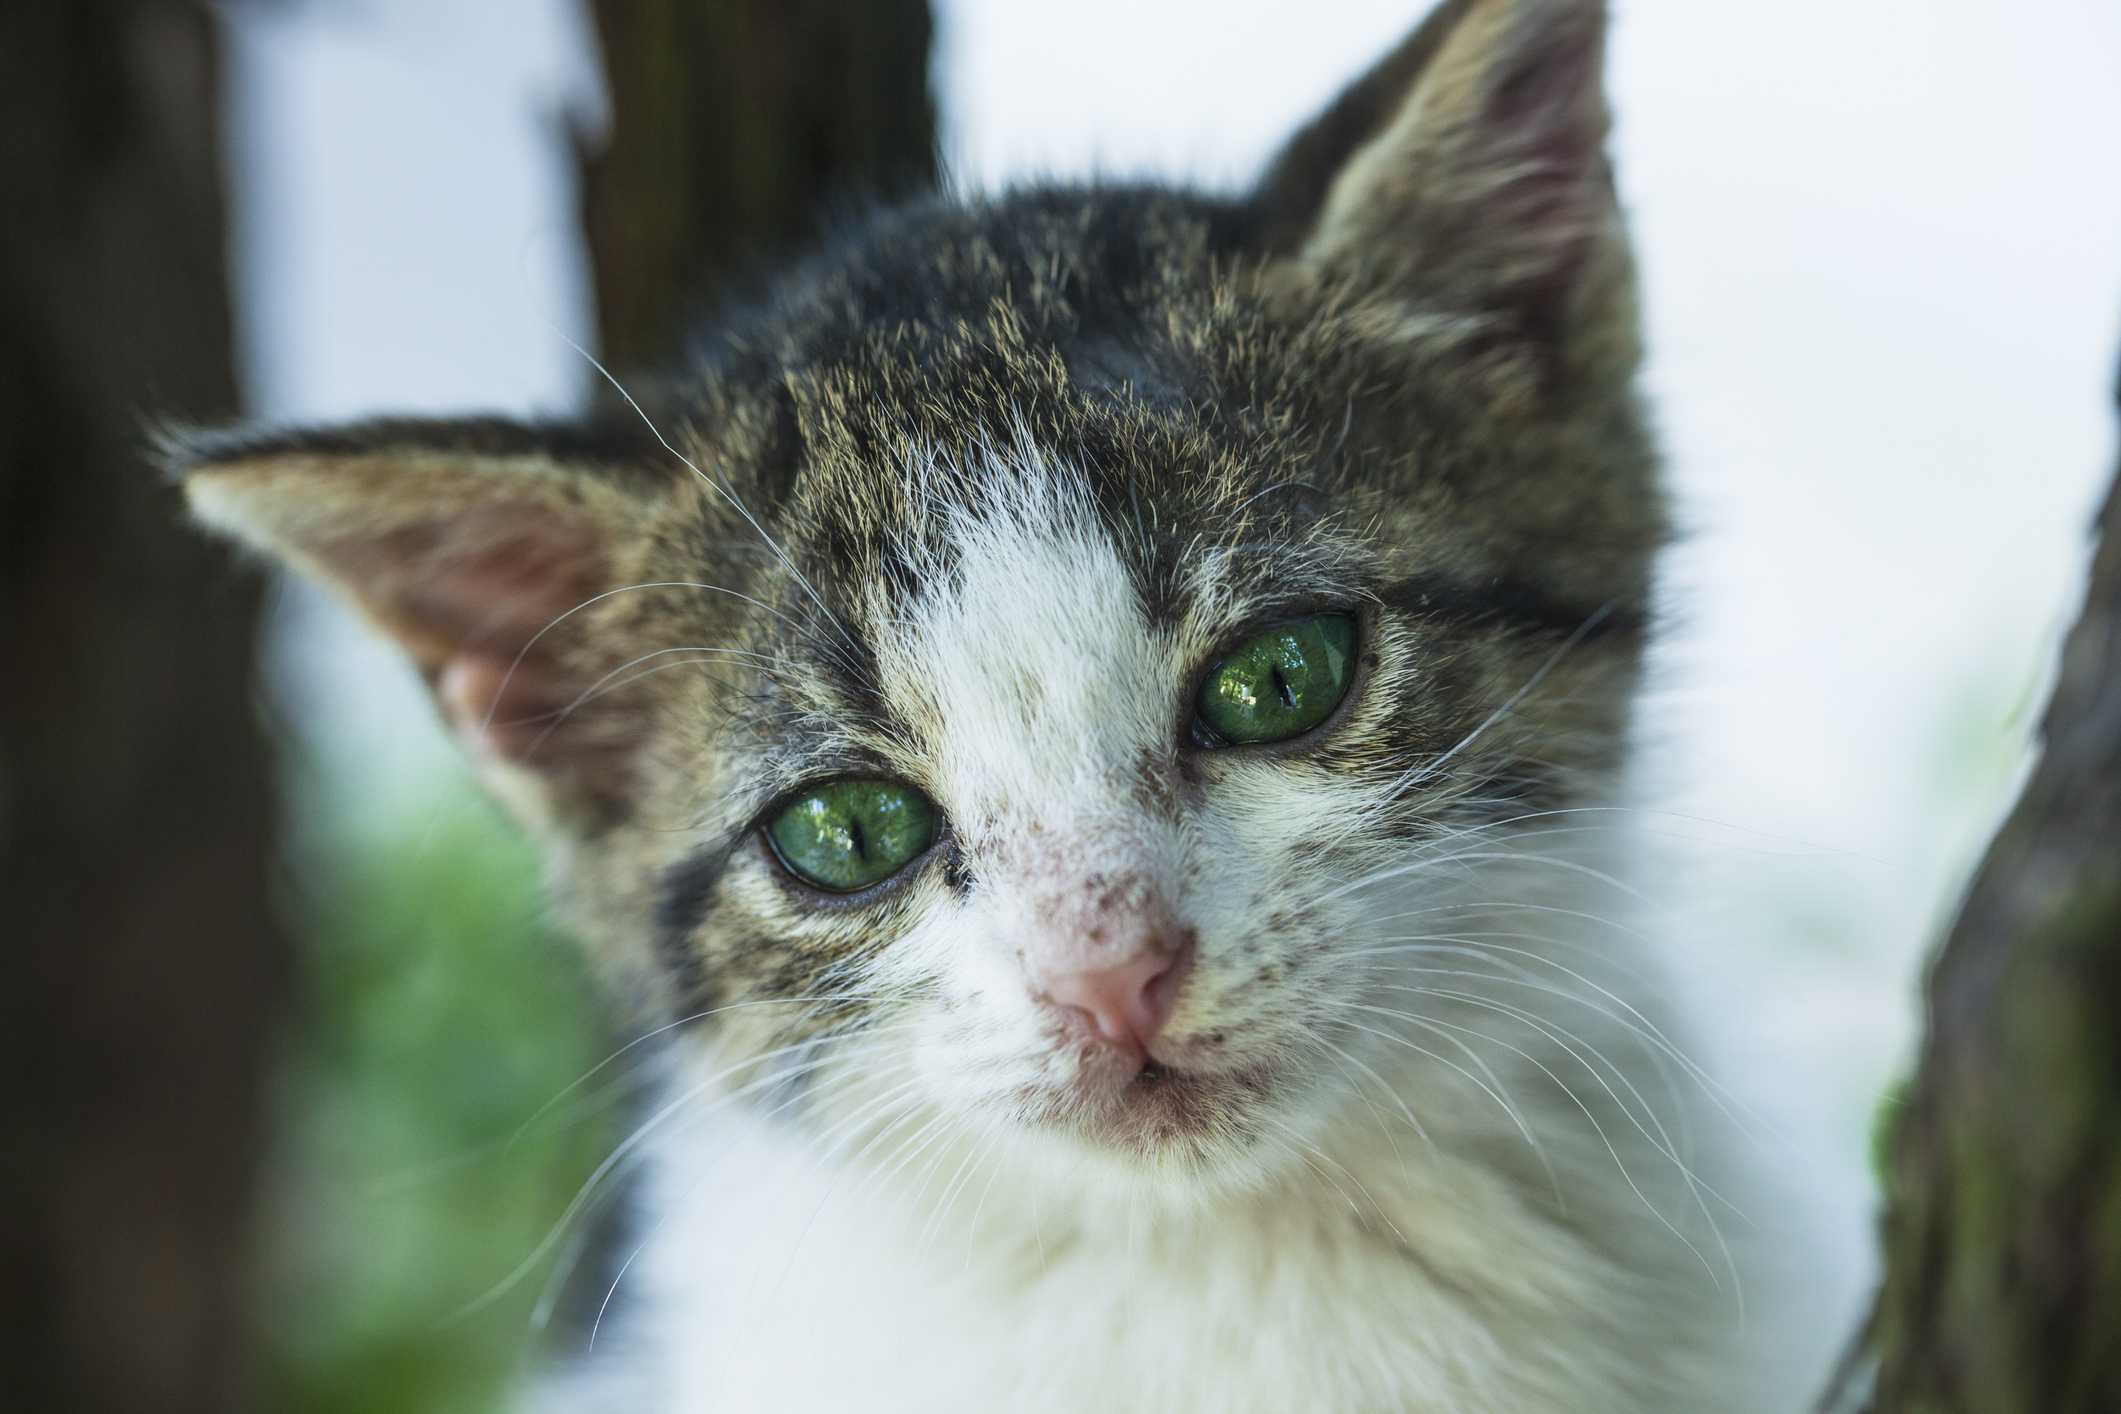 Close up of cat that's in poor condition